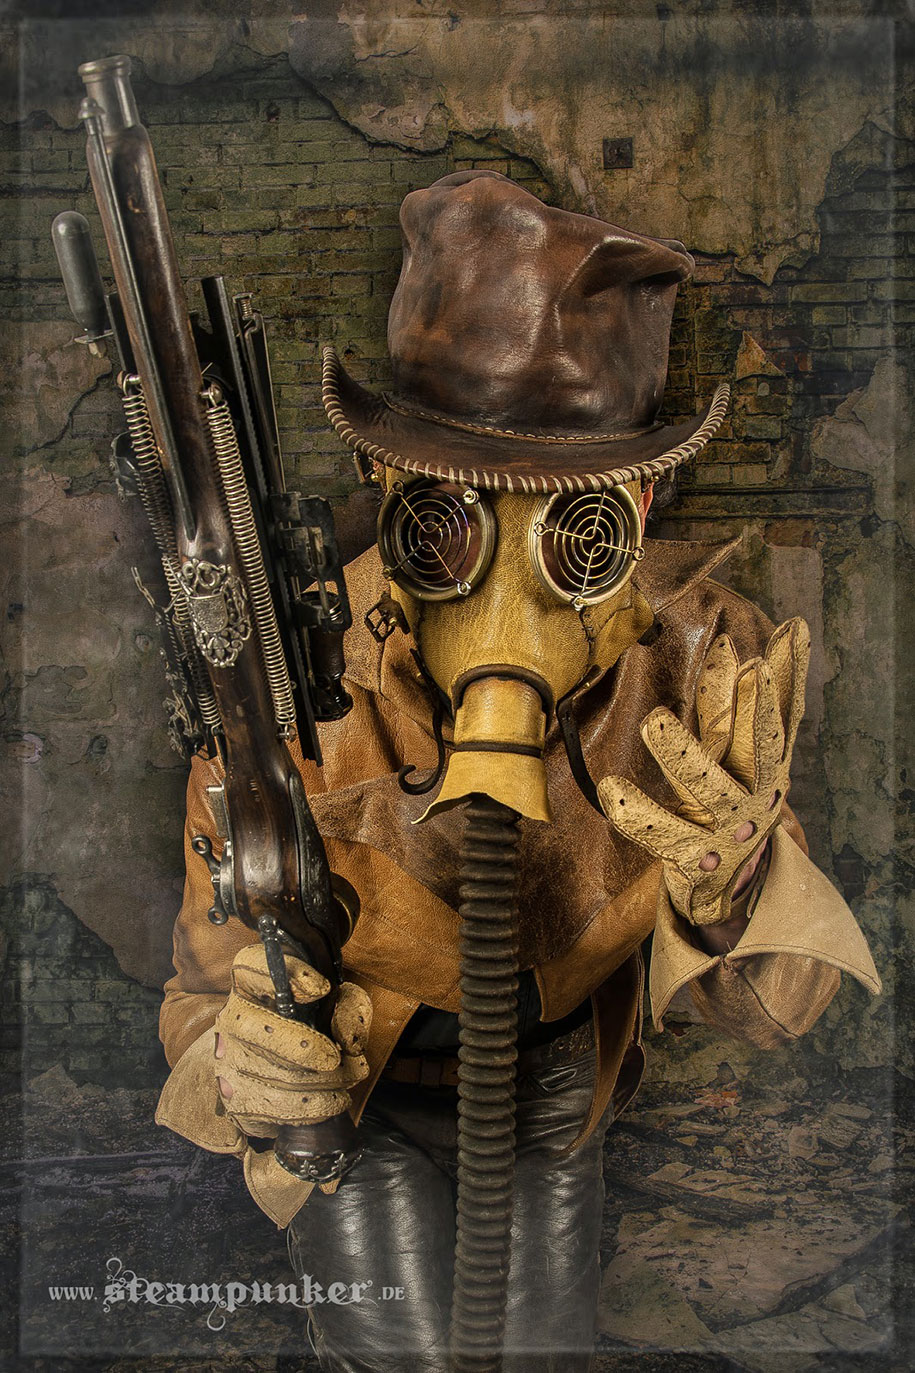 cosplay-costumes-steampunk-art-armor-clothing-alexander-schlesier-5